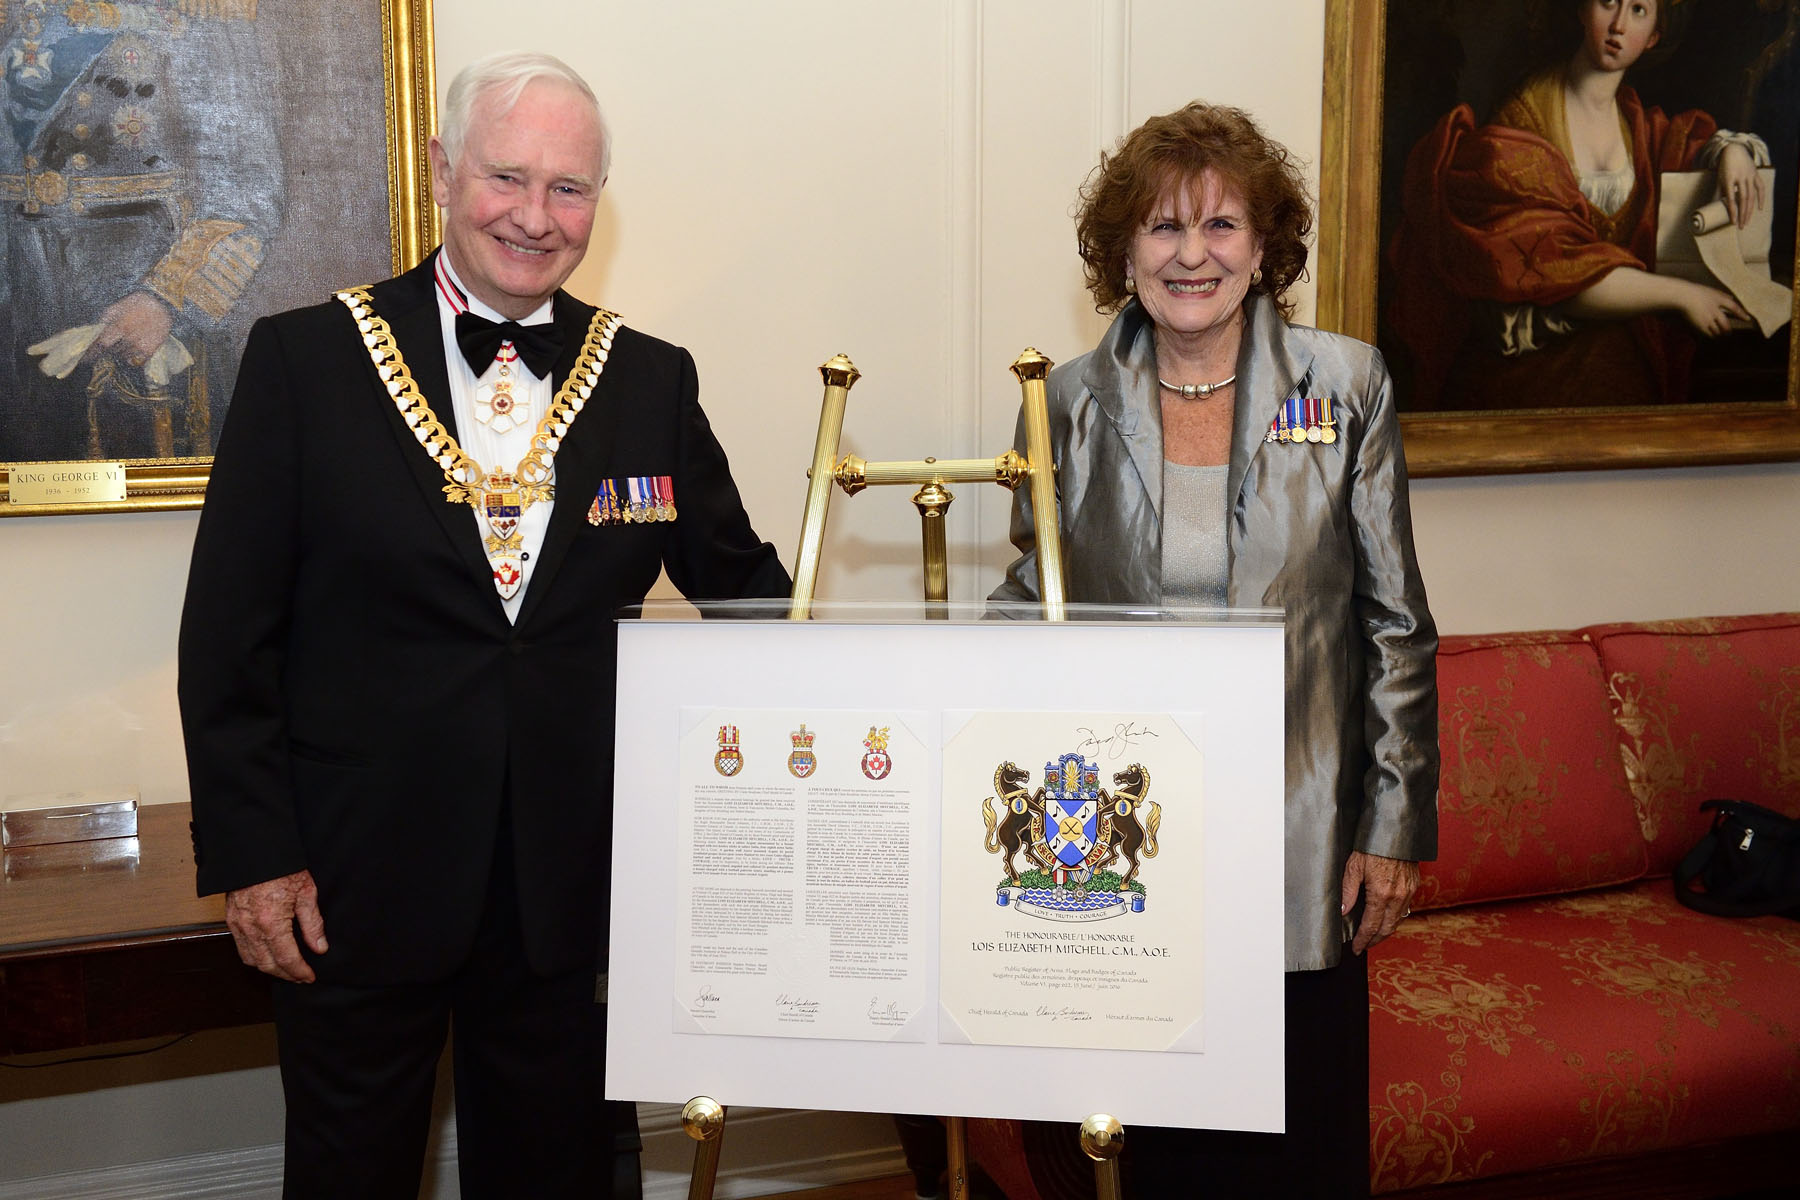 It was also the occasion for the Governor General to present Her Honour the Honourable Lois E. Mitchell, Lieutenant Governor of Alberta, with her new coat of arms.